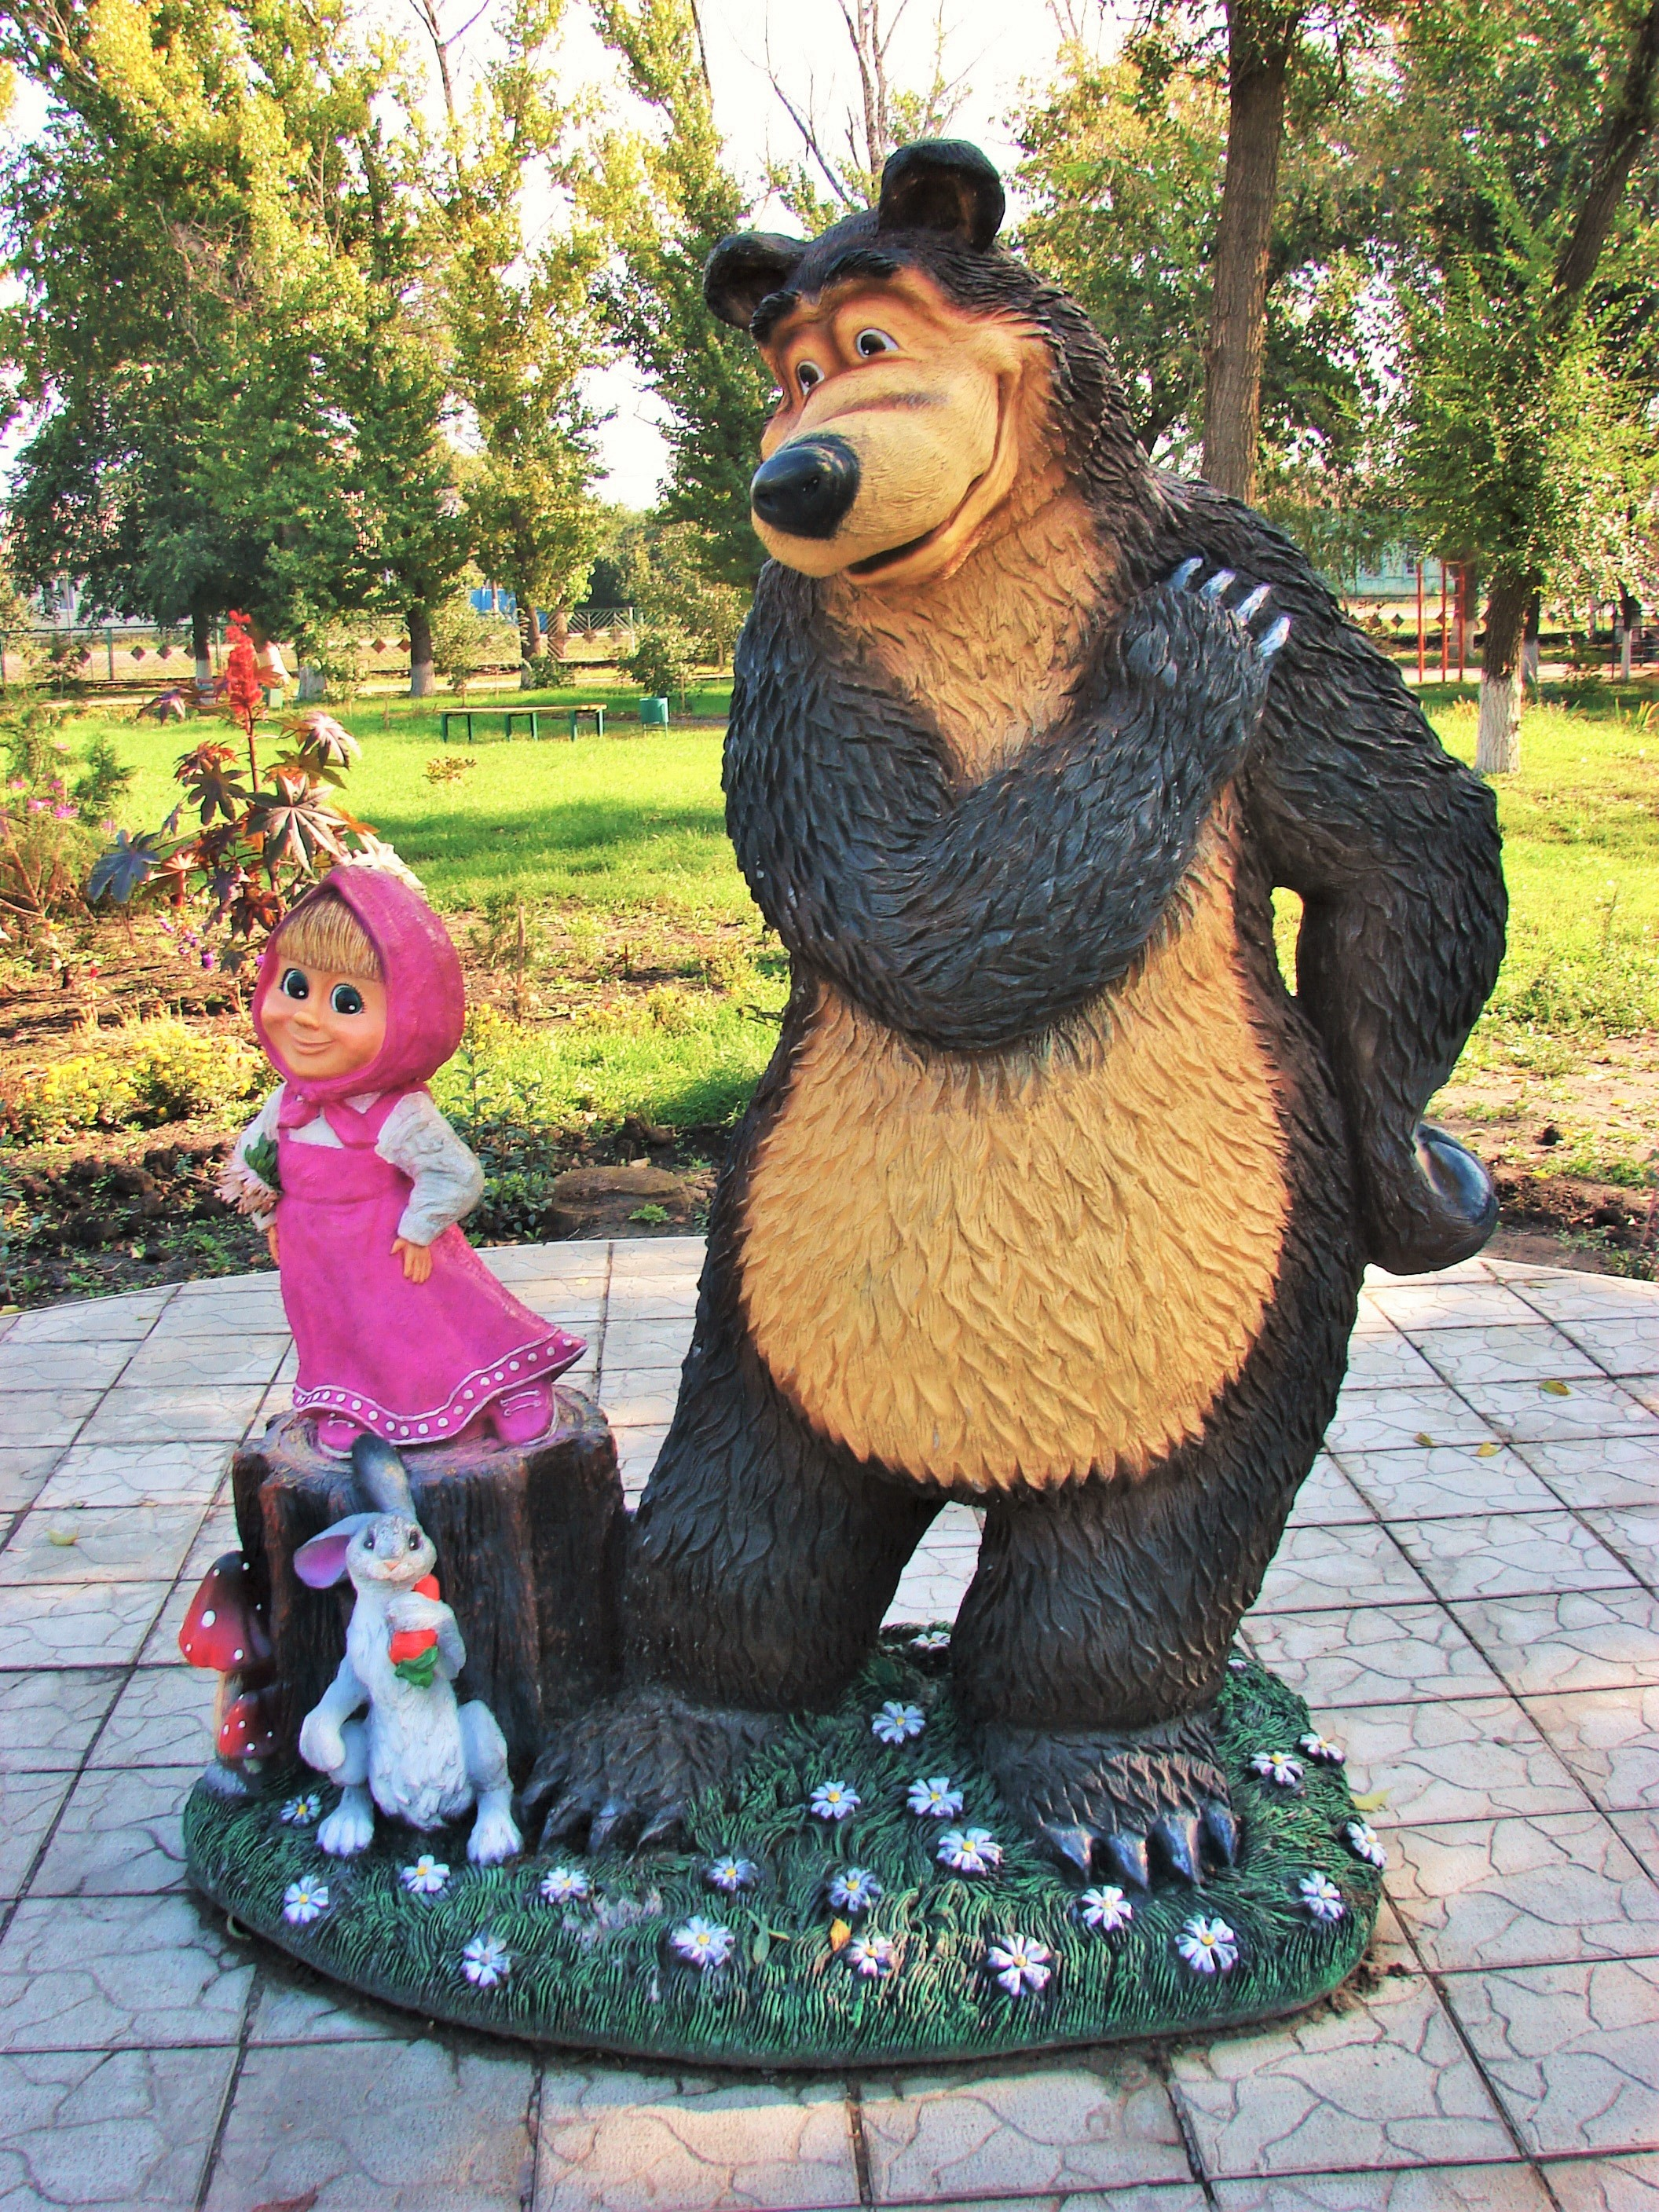 Sculpture_of_cartoon_characters_Masha_and_Bear_in_Yelan_(Volgograd_Oblast).JPG